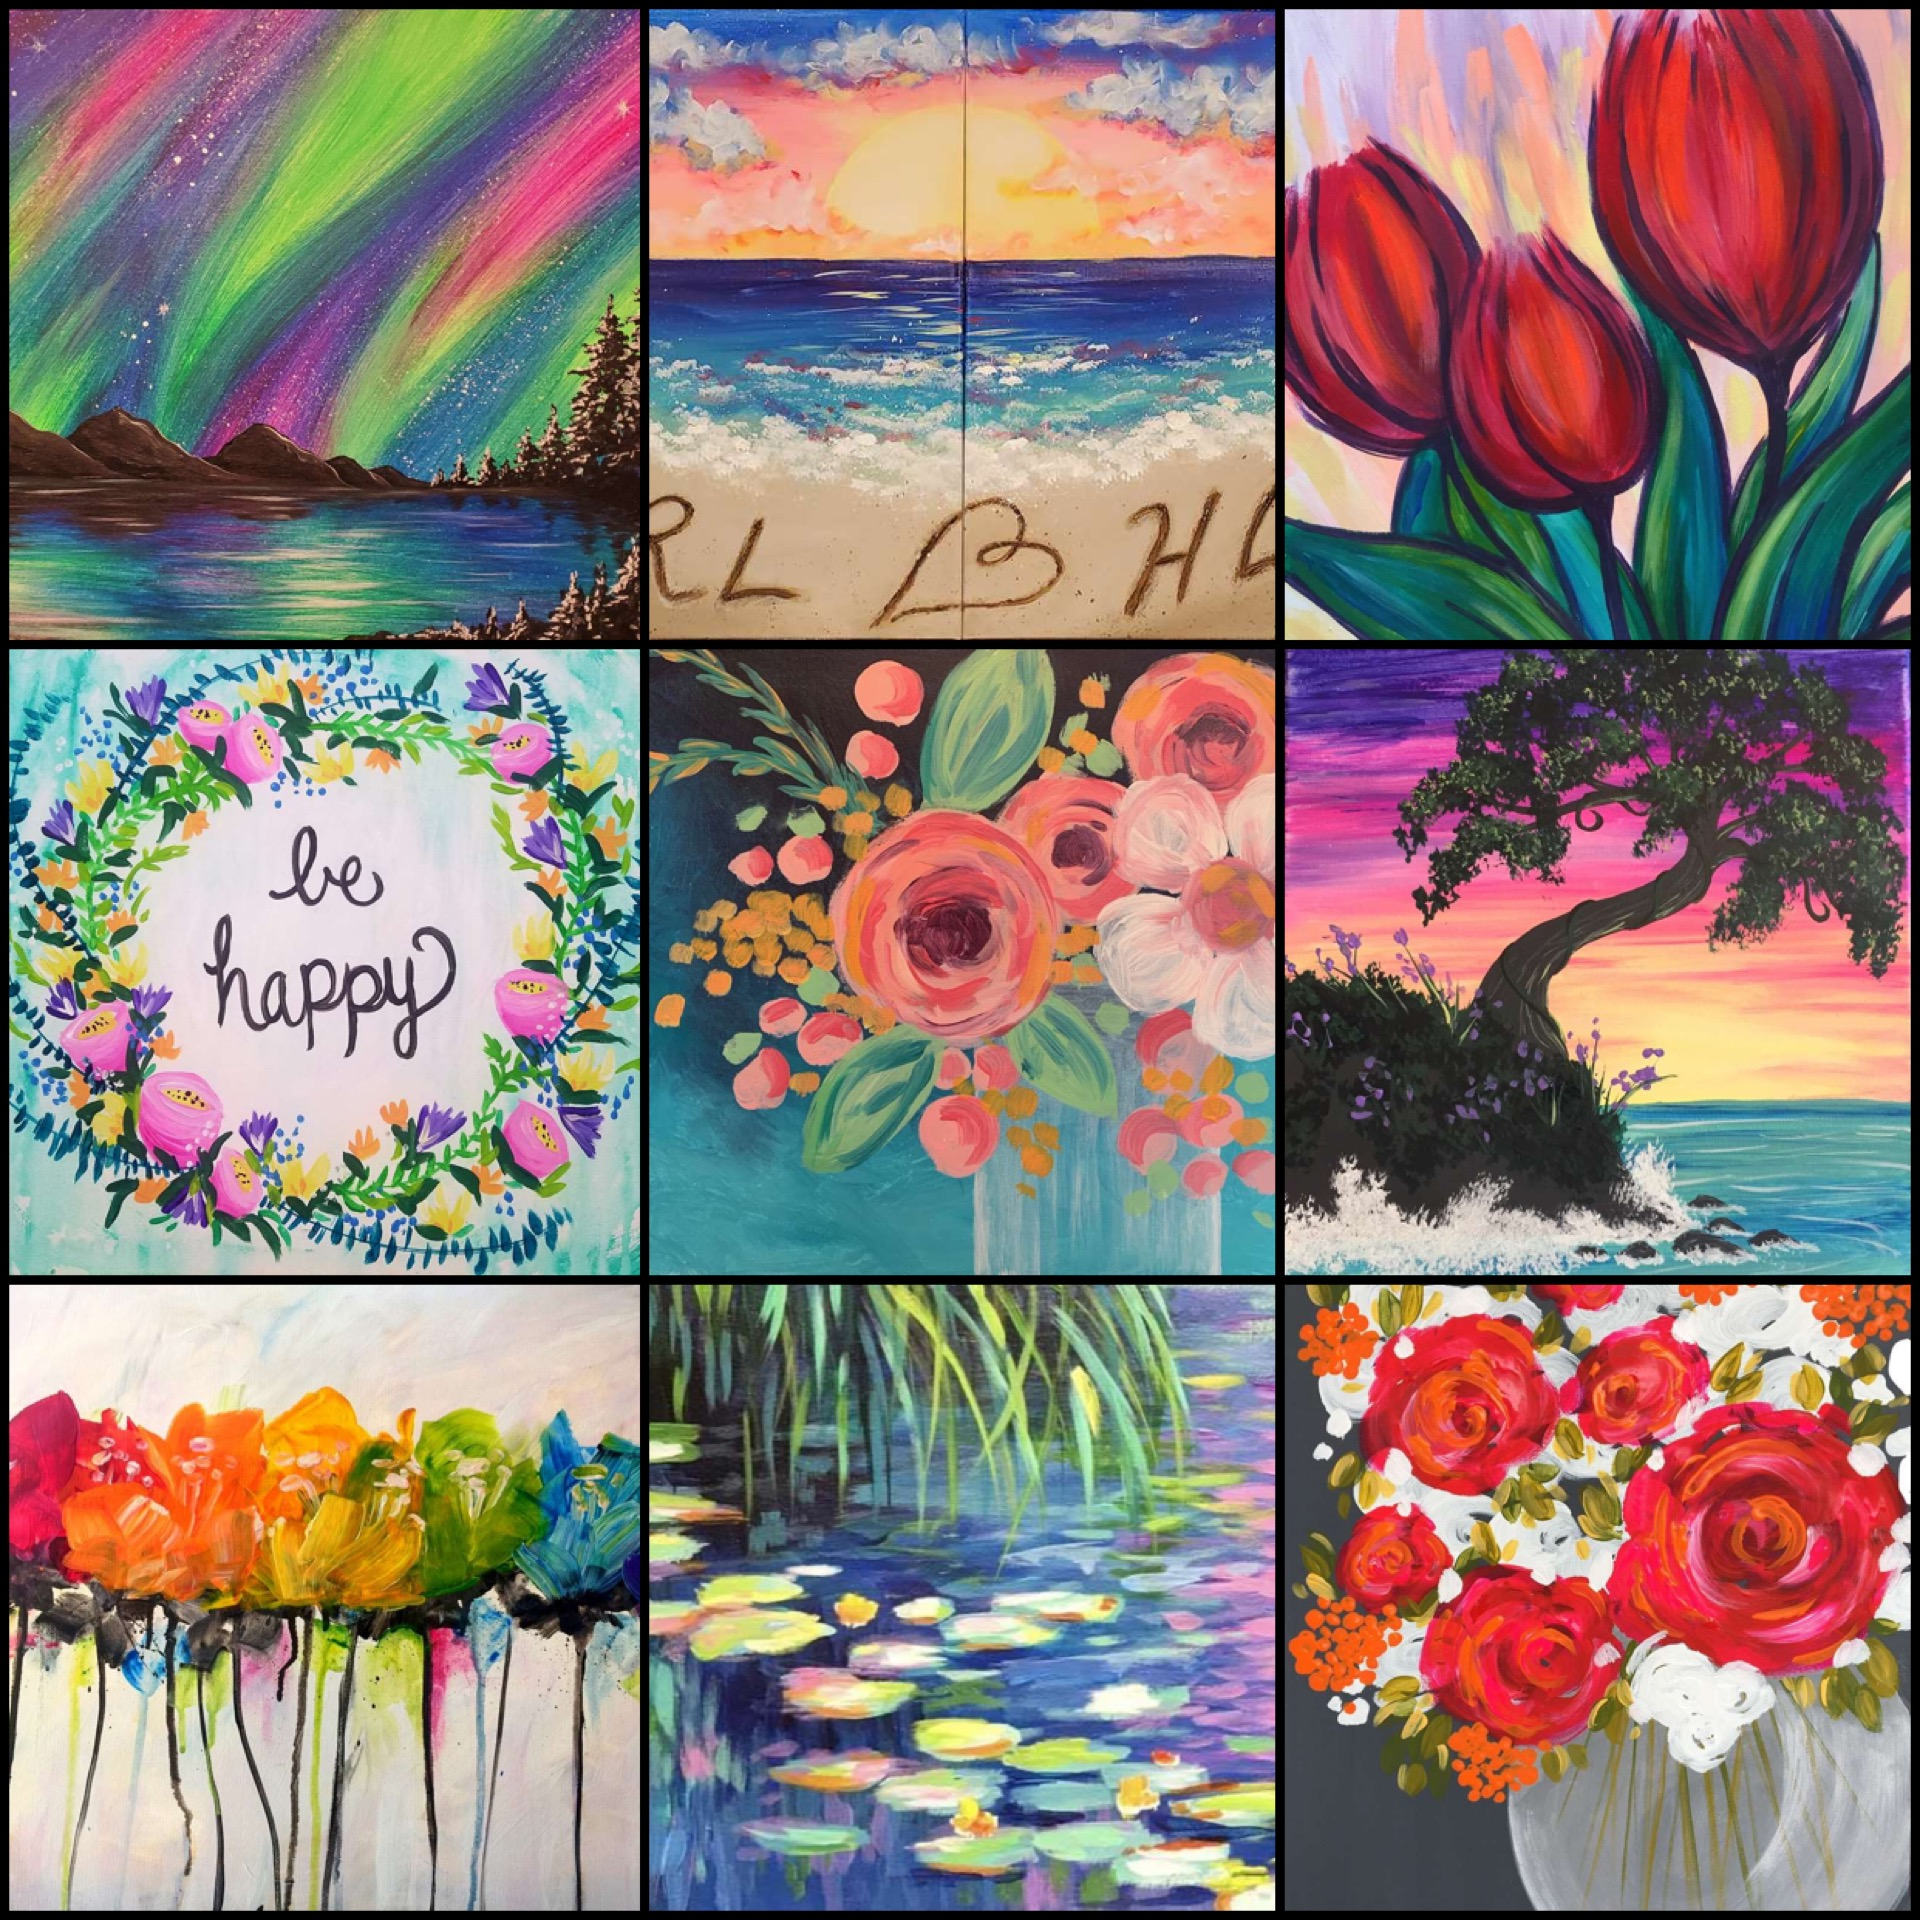 Colorful Artwork To Liven Up Your Home During The Grey Winter Days